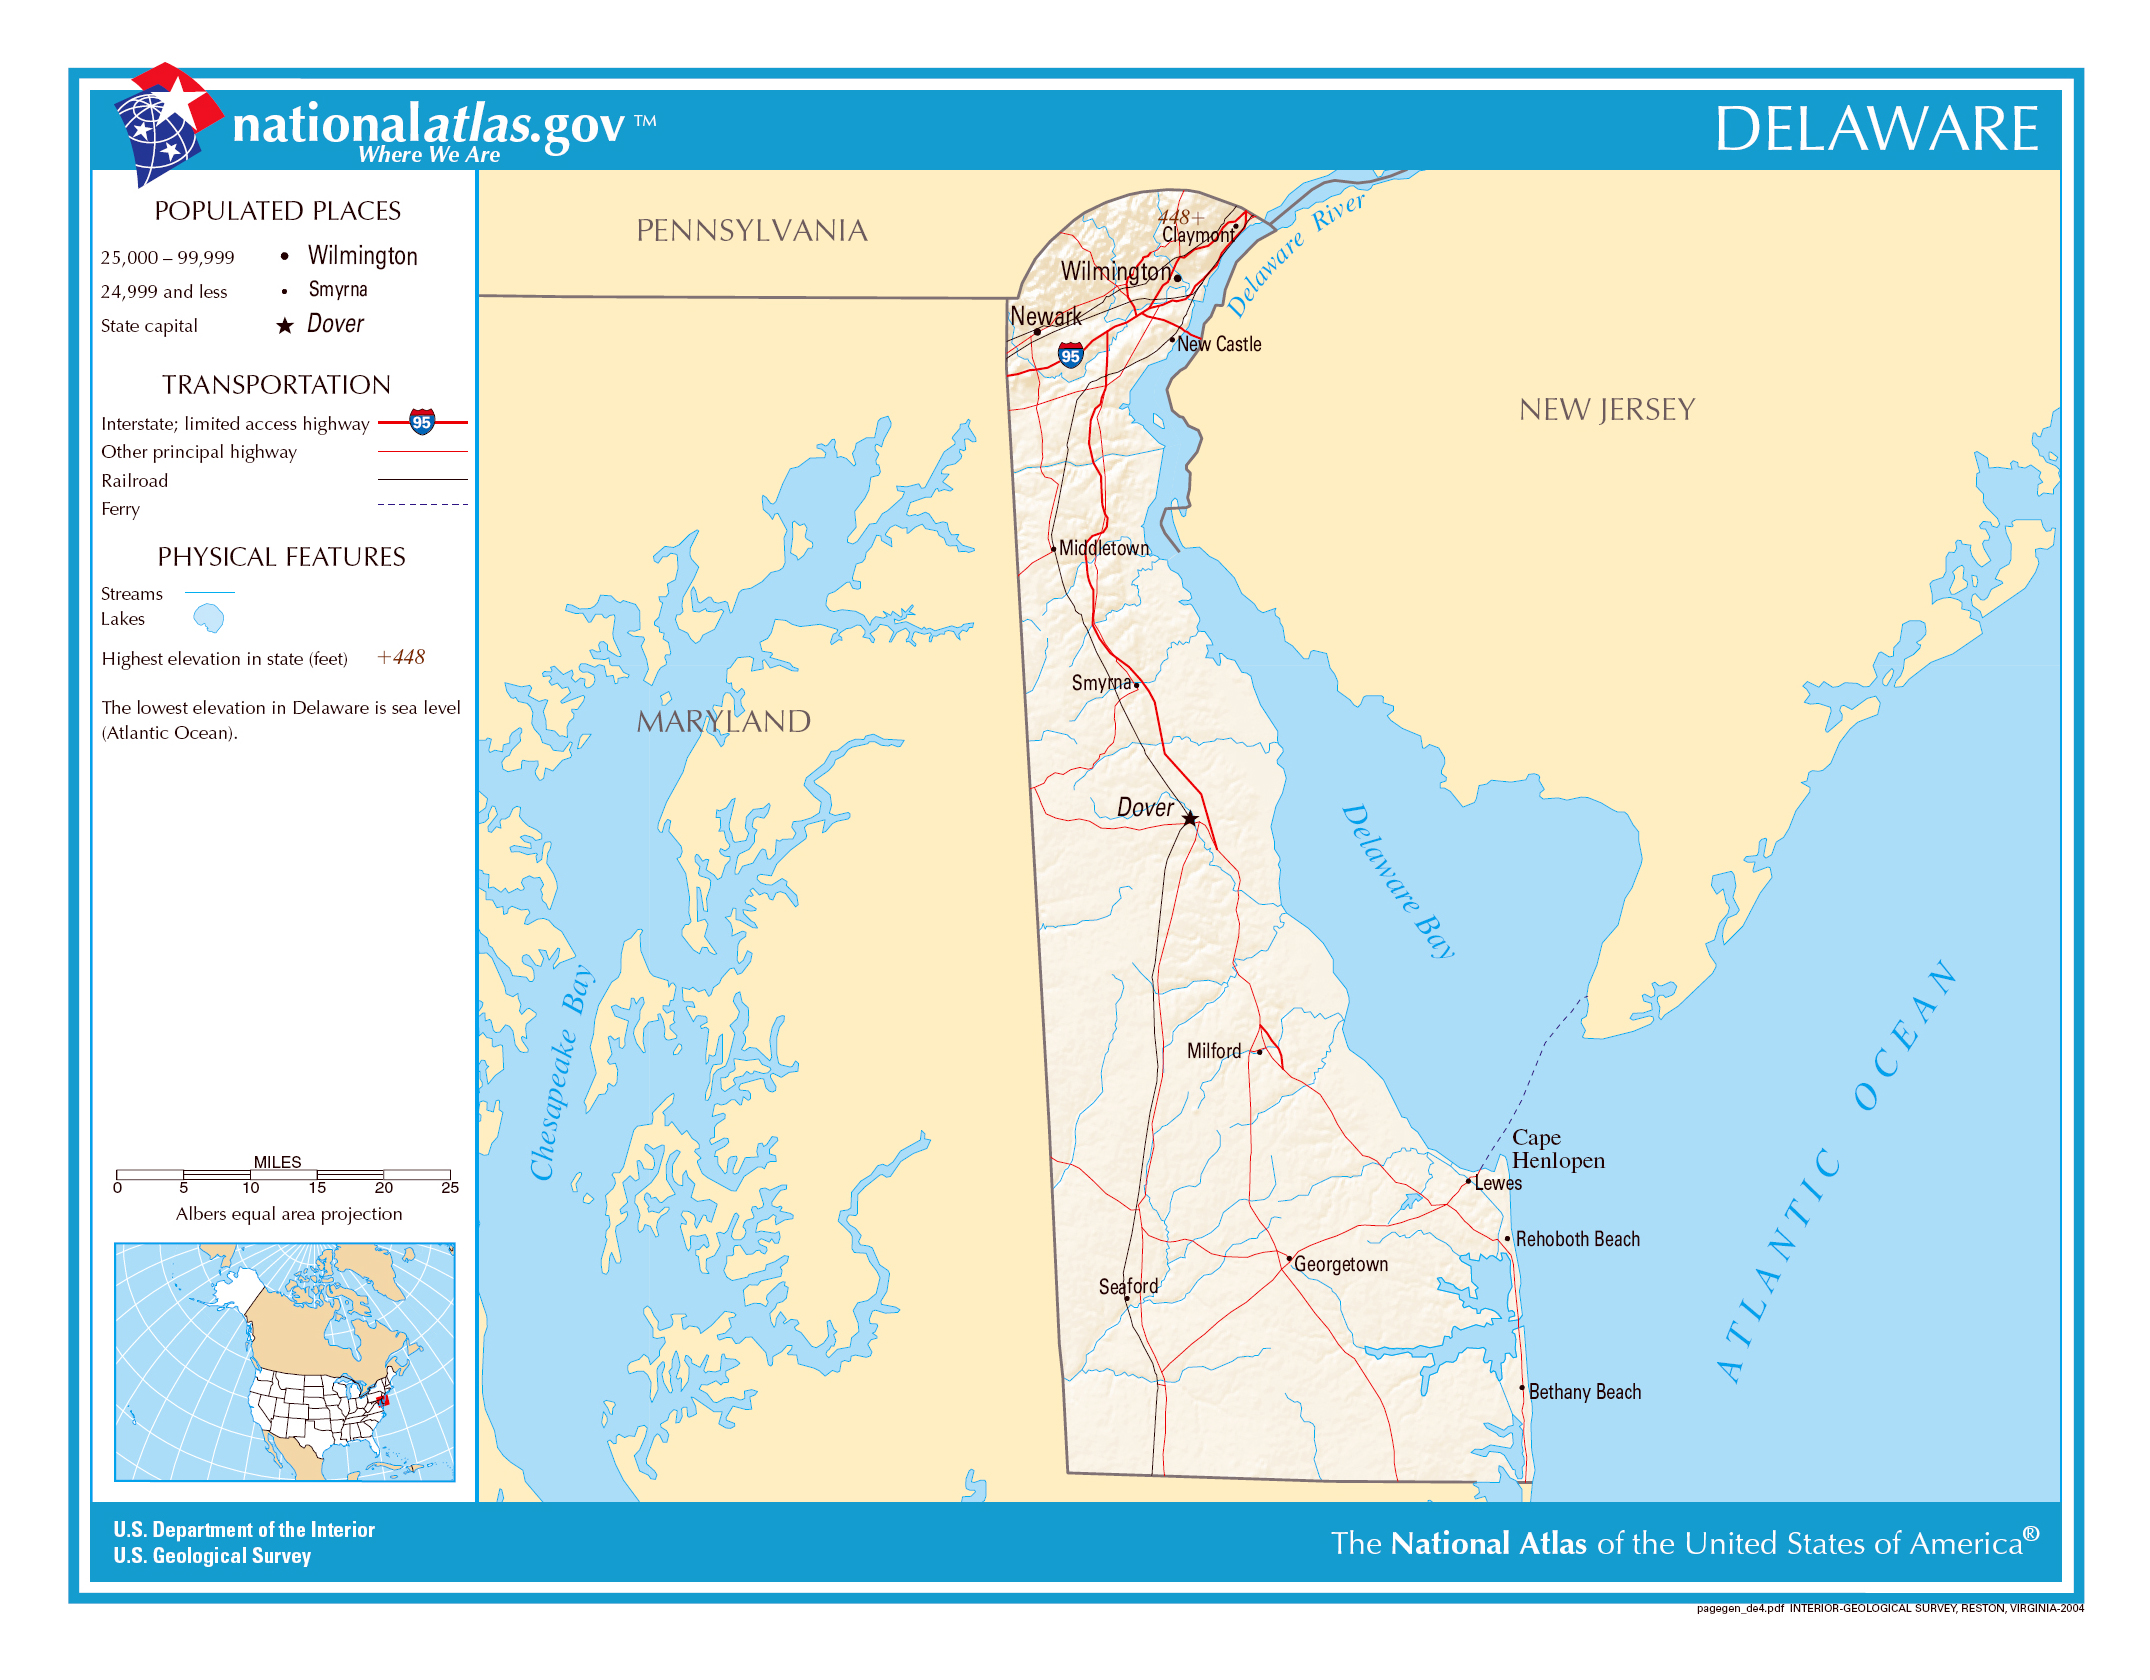 Large detailed map of Delaware state | Delaware state | USA ... on mississippi map, georgia map, north carolina map, nova scotia map, michigan map, south carolina map, kansas map, idaho map, new england map, wisconsin map, ohio map, maine map, dc map, usa map, connecticut map, iowa map, pennsylvania map, nevada map, illinois map, us state map, rhode island map, virginia map, minnesota map, florida map, louisiana map, maryland map, utah map, missouri map, montana map, indiana map, texas map, new york map, kentucky map,